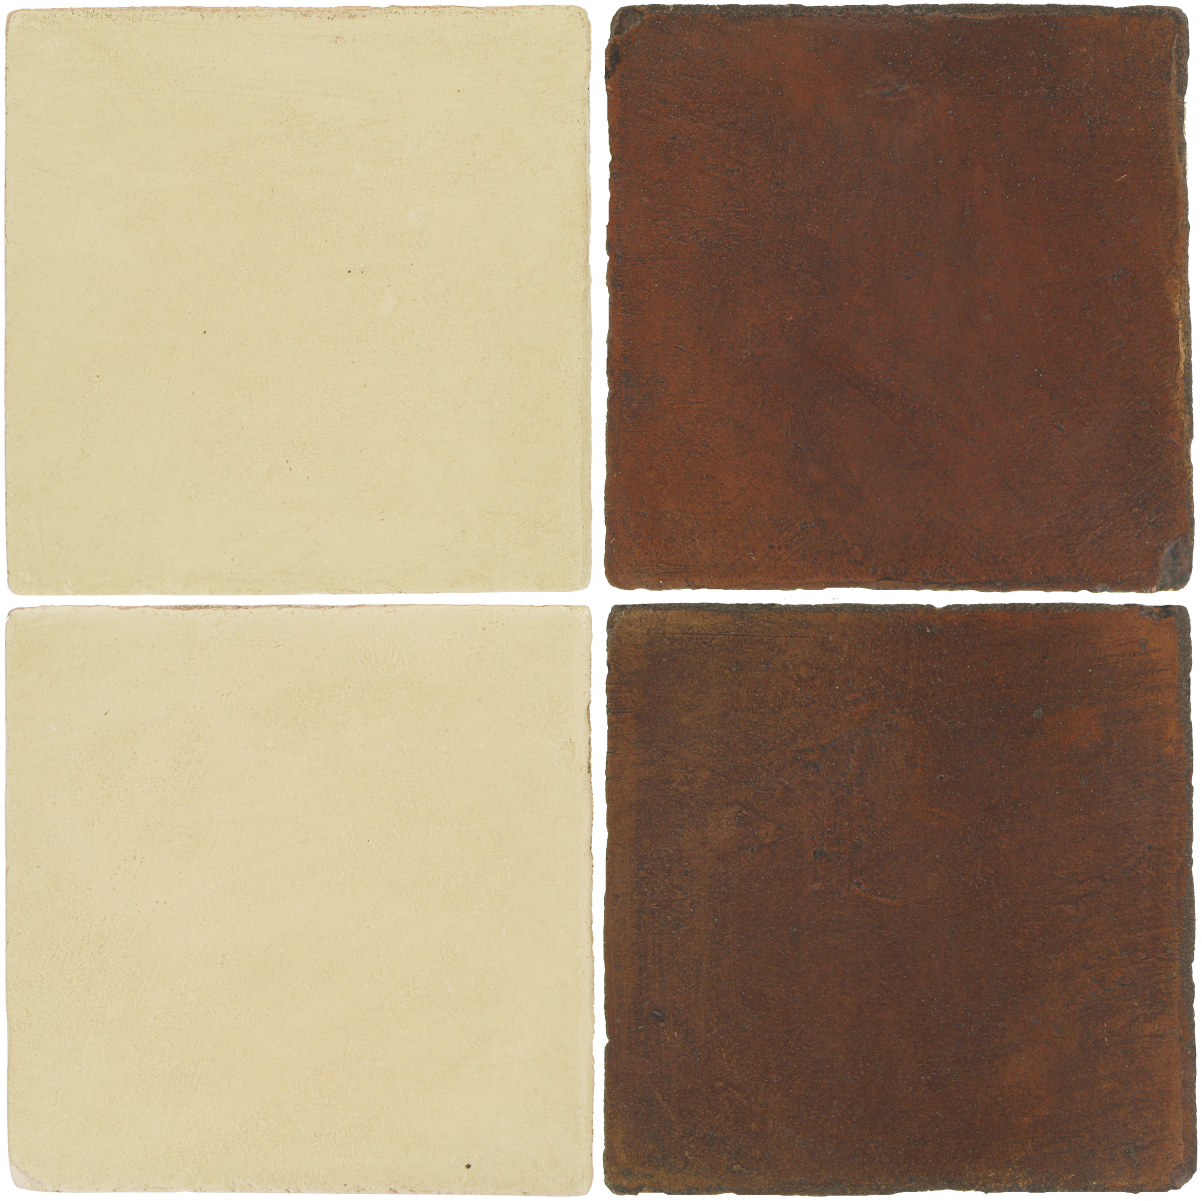 Pedralbes Antique Terracotta  2 Color Combinations  OHS-PGPW Pergamino White + OHS-PSOW Old World